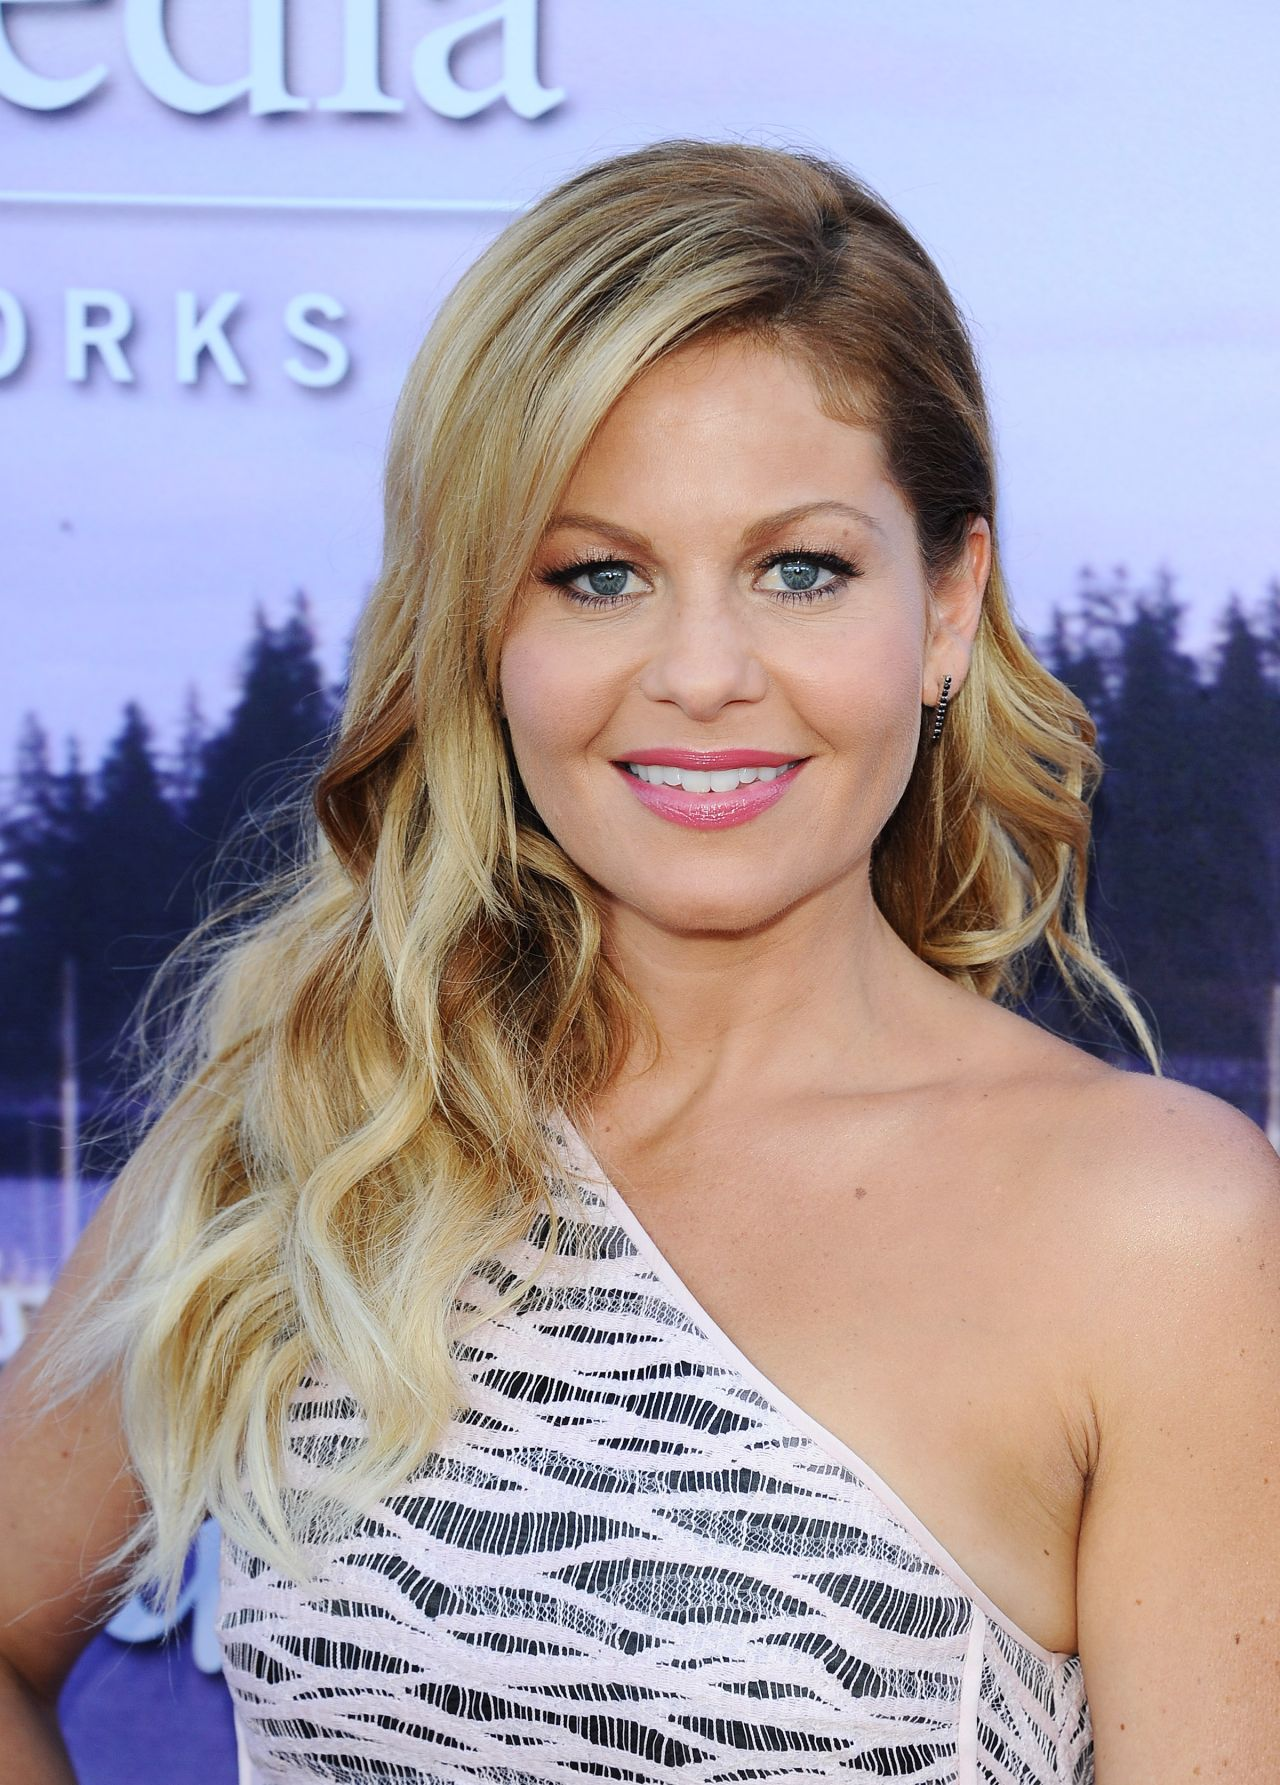 Candace Cameron Bure Hallmark Movies Amp Mysteries Party